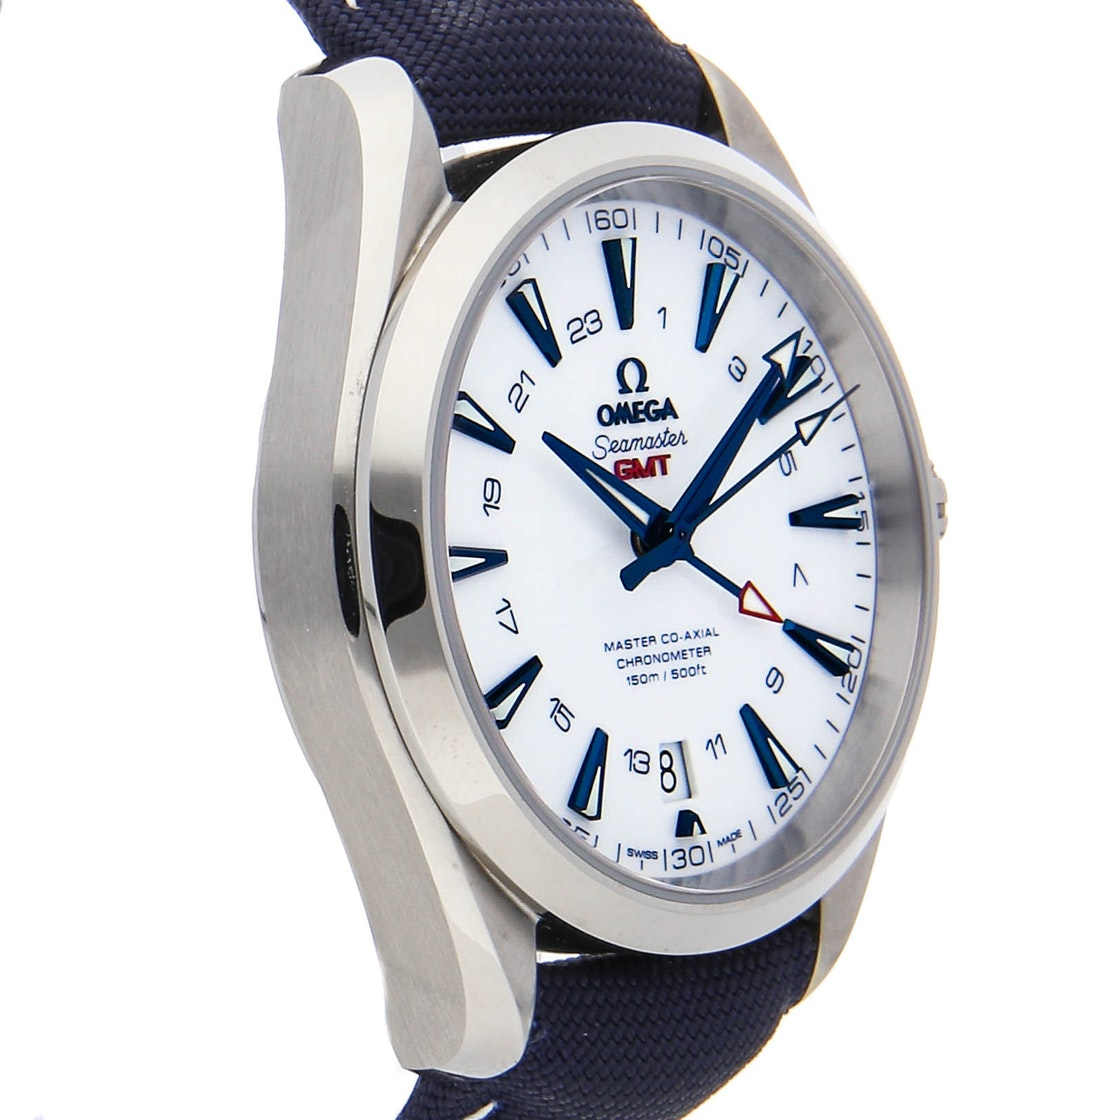 Omega Seamaster Aqua Terra 150m GMT Good Planet 231.92.43.22.04.001